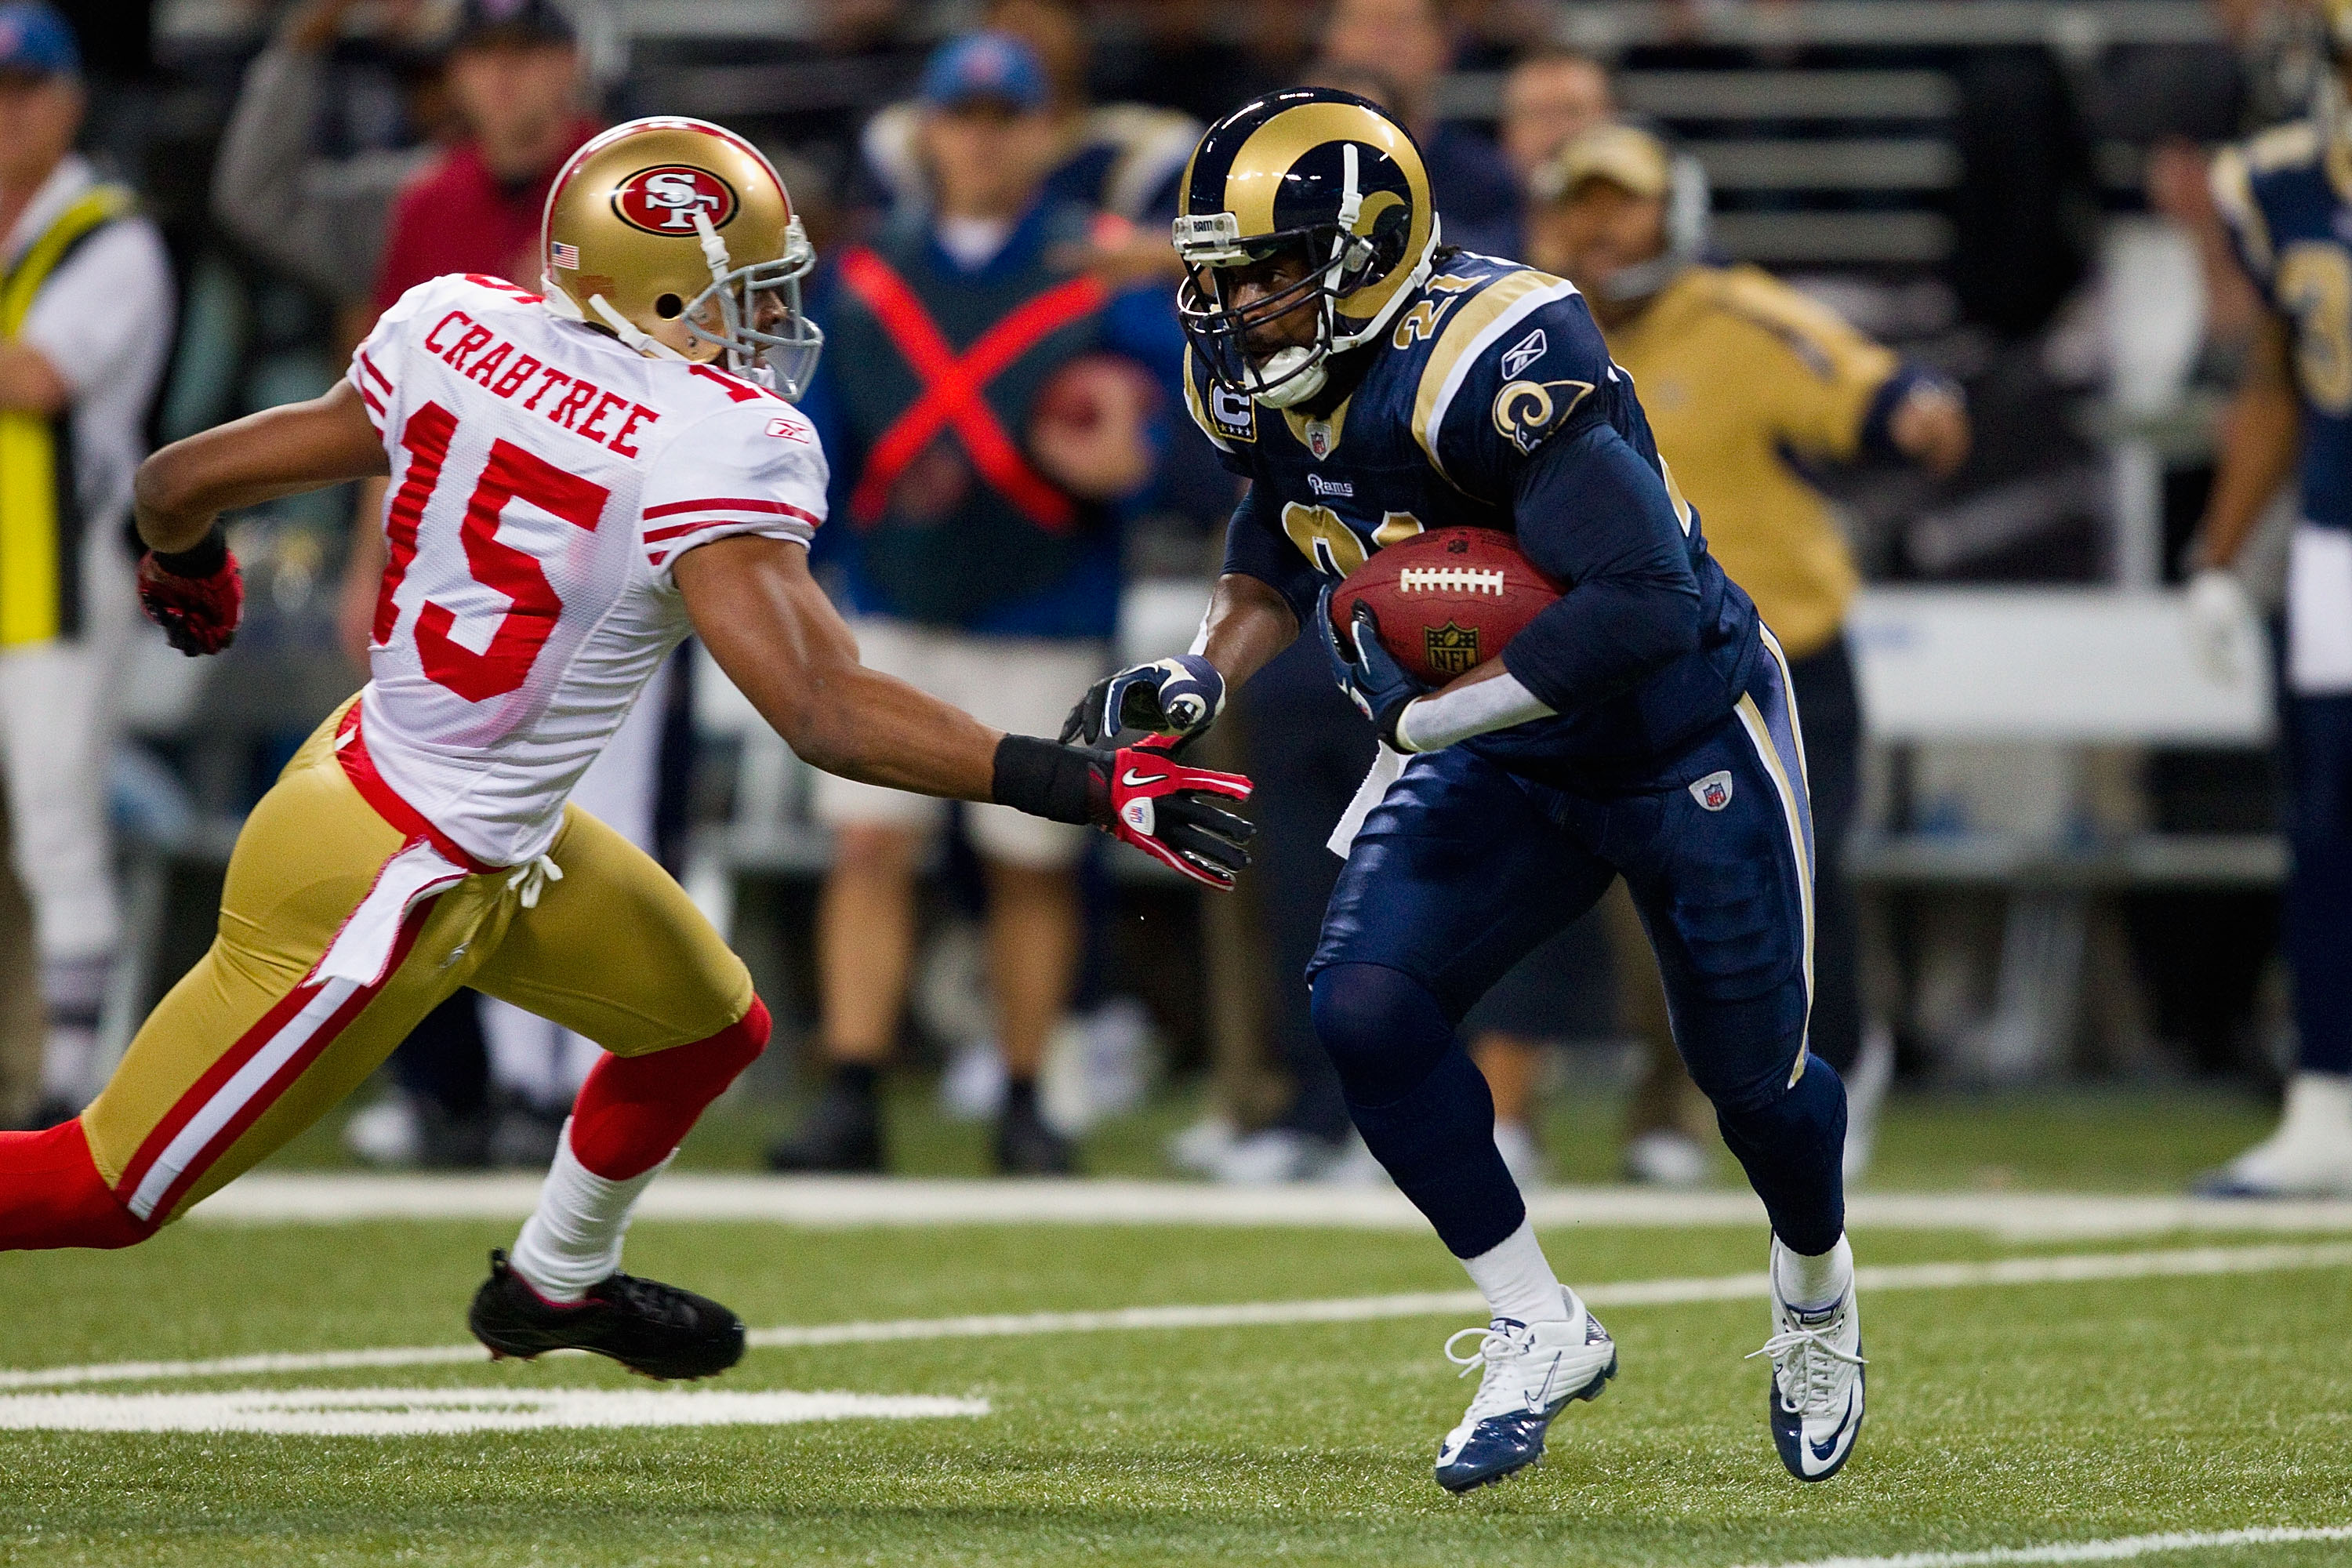 ST. LOUIS, MO - DECEMBER 26: Oshiomogho Atogwe #21 of the St. Louis Rams returns an interception against Michael Crabtree #15 of the San Francisco 49ers at the Edward Jones Dome on December 26, 2010 in St. Louis, Missouri. The Rams beat the 49ers 25-17. (